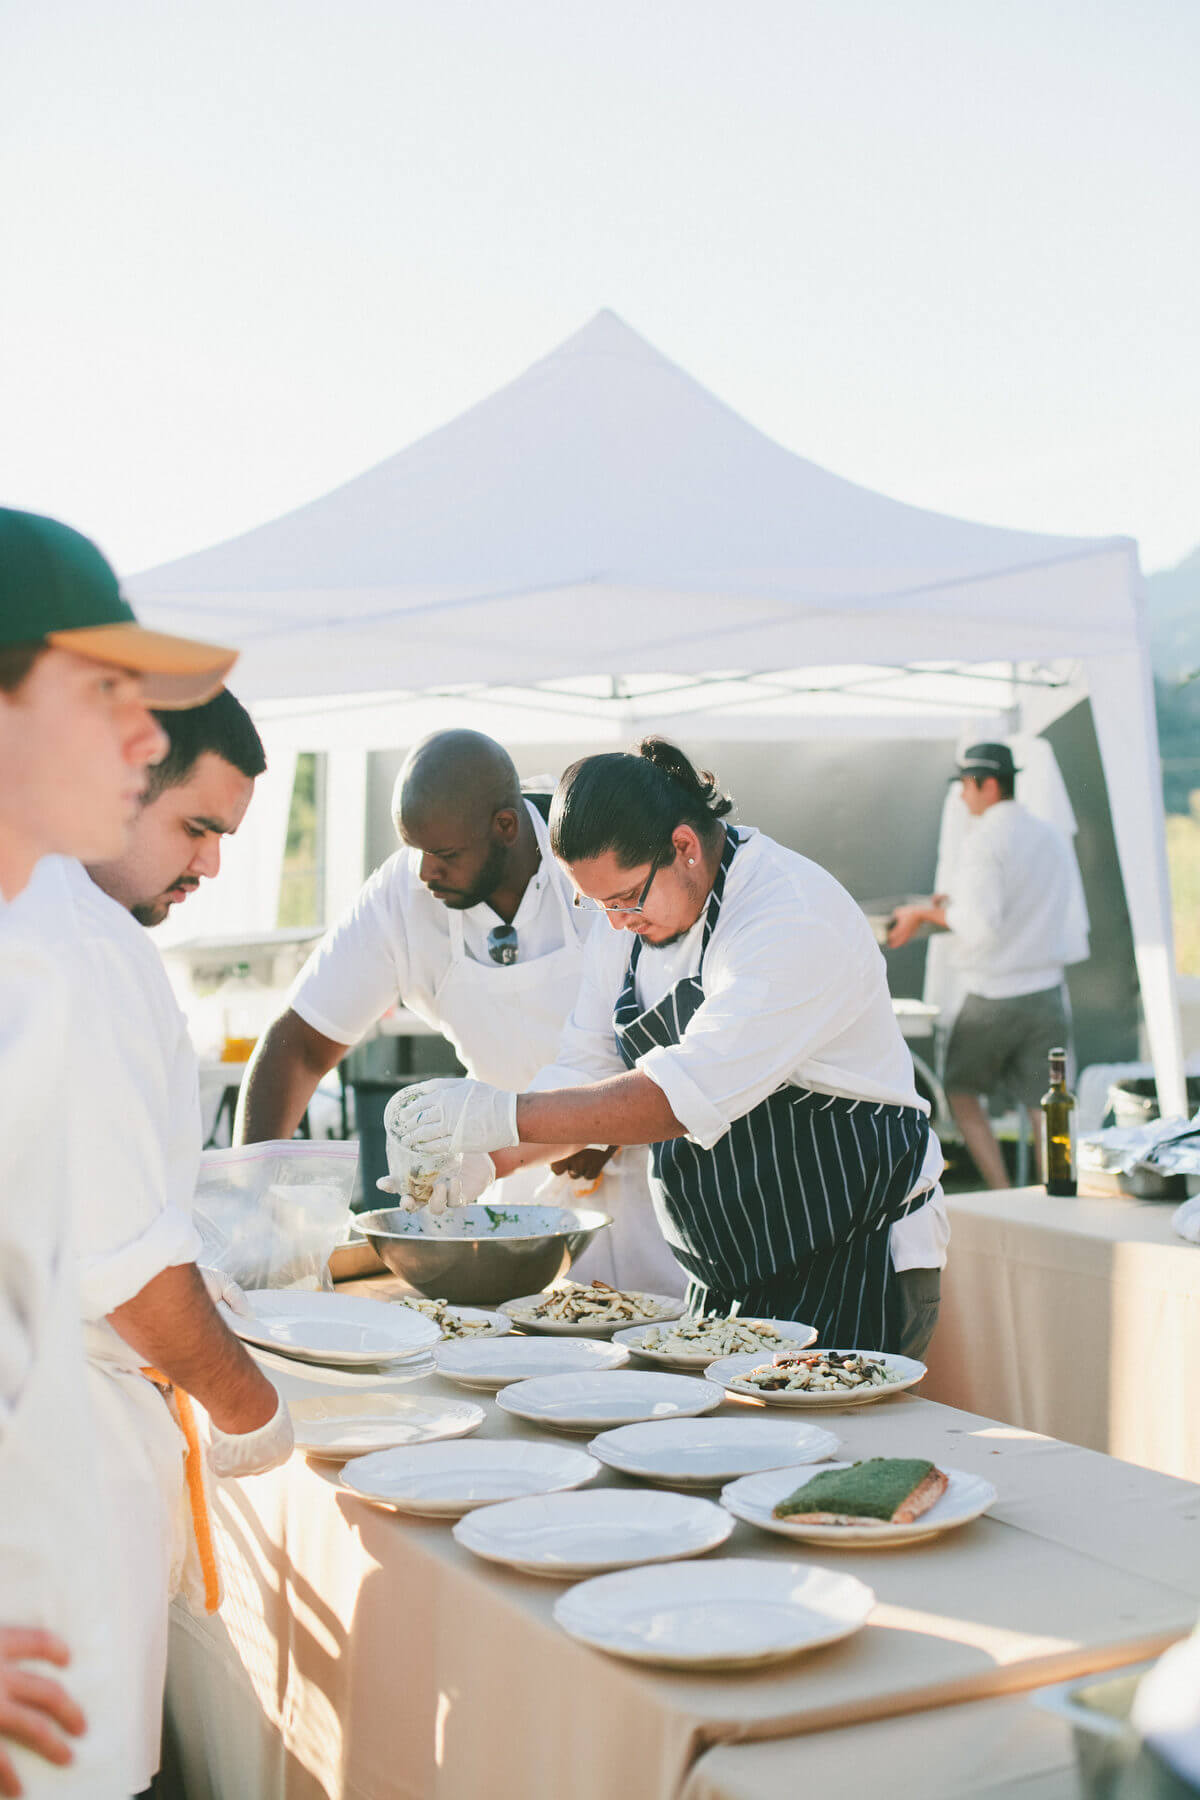 chefs preparing catering